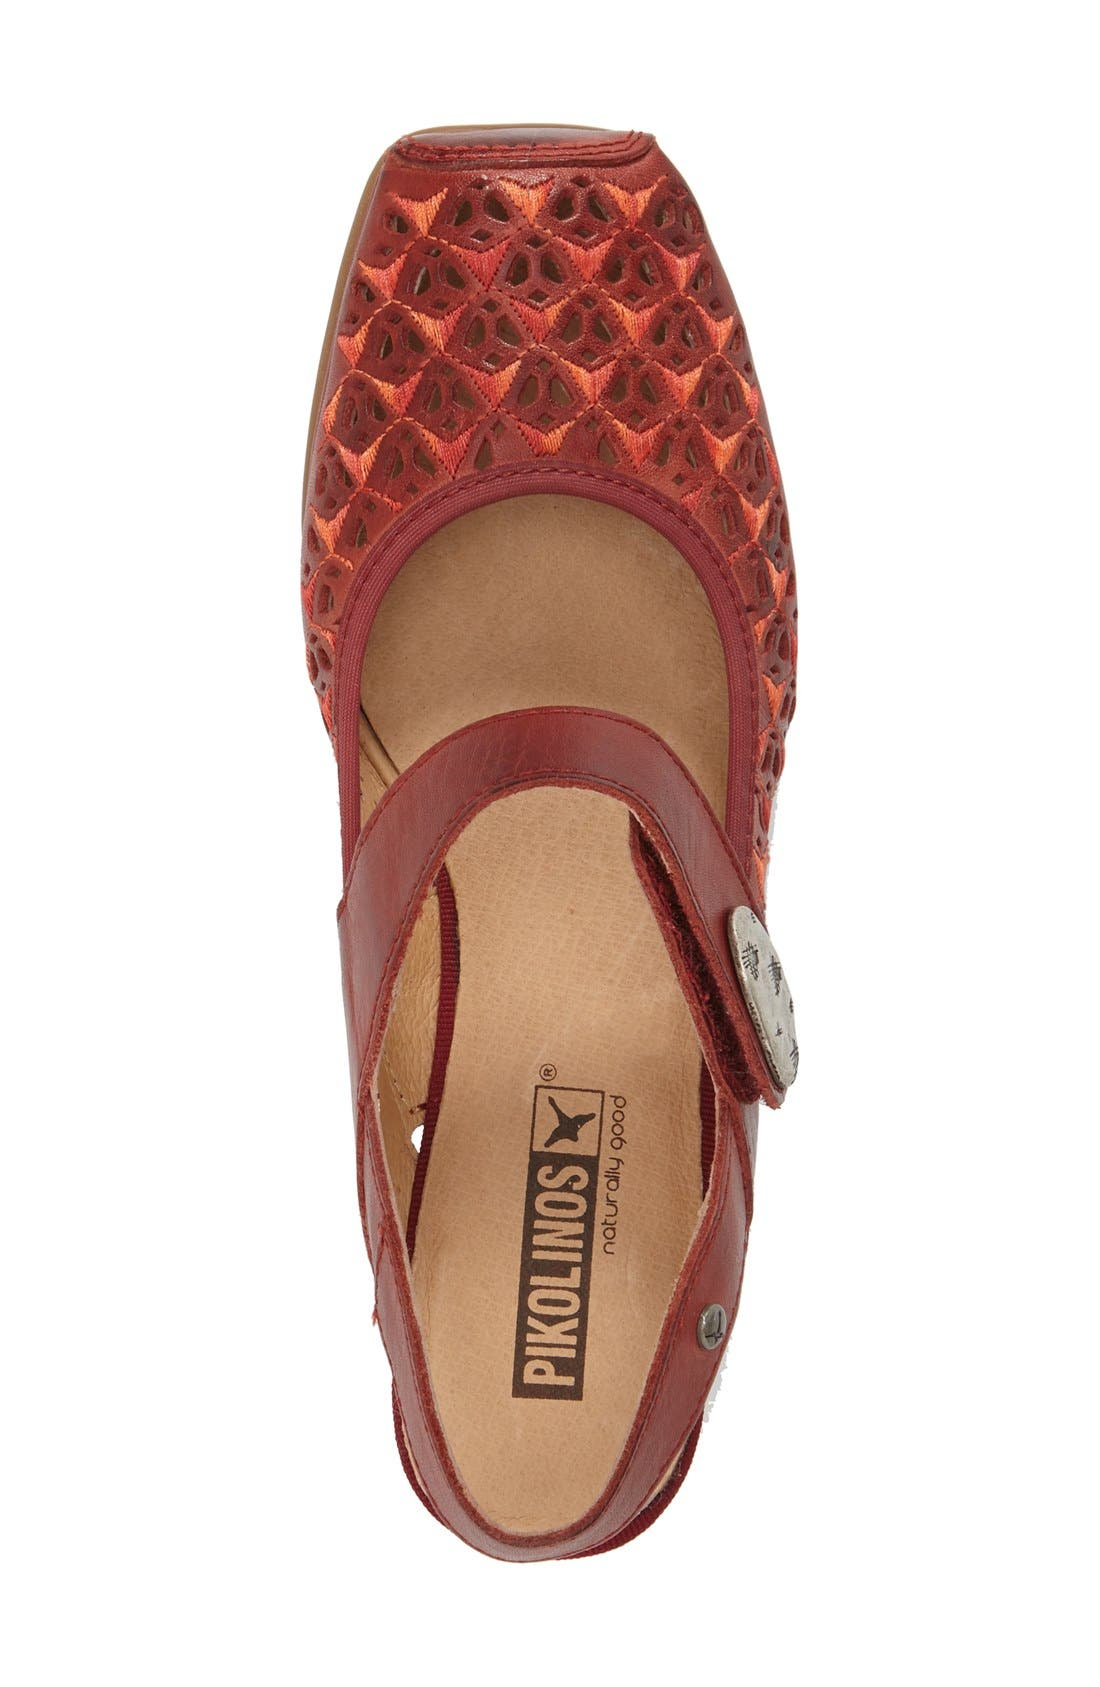 Alternate Image 3  - PIKOLINOS 'Gandia' Sandal (Women)